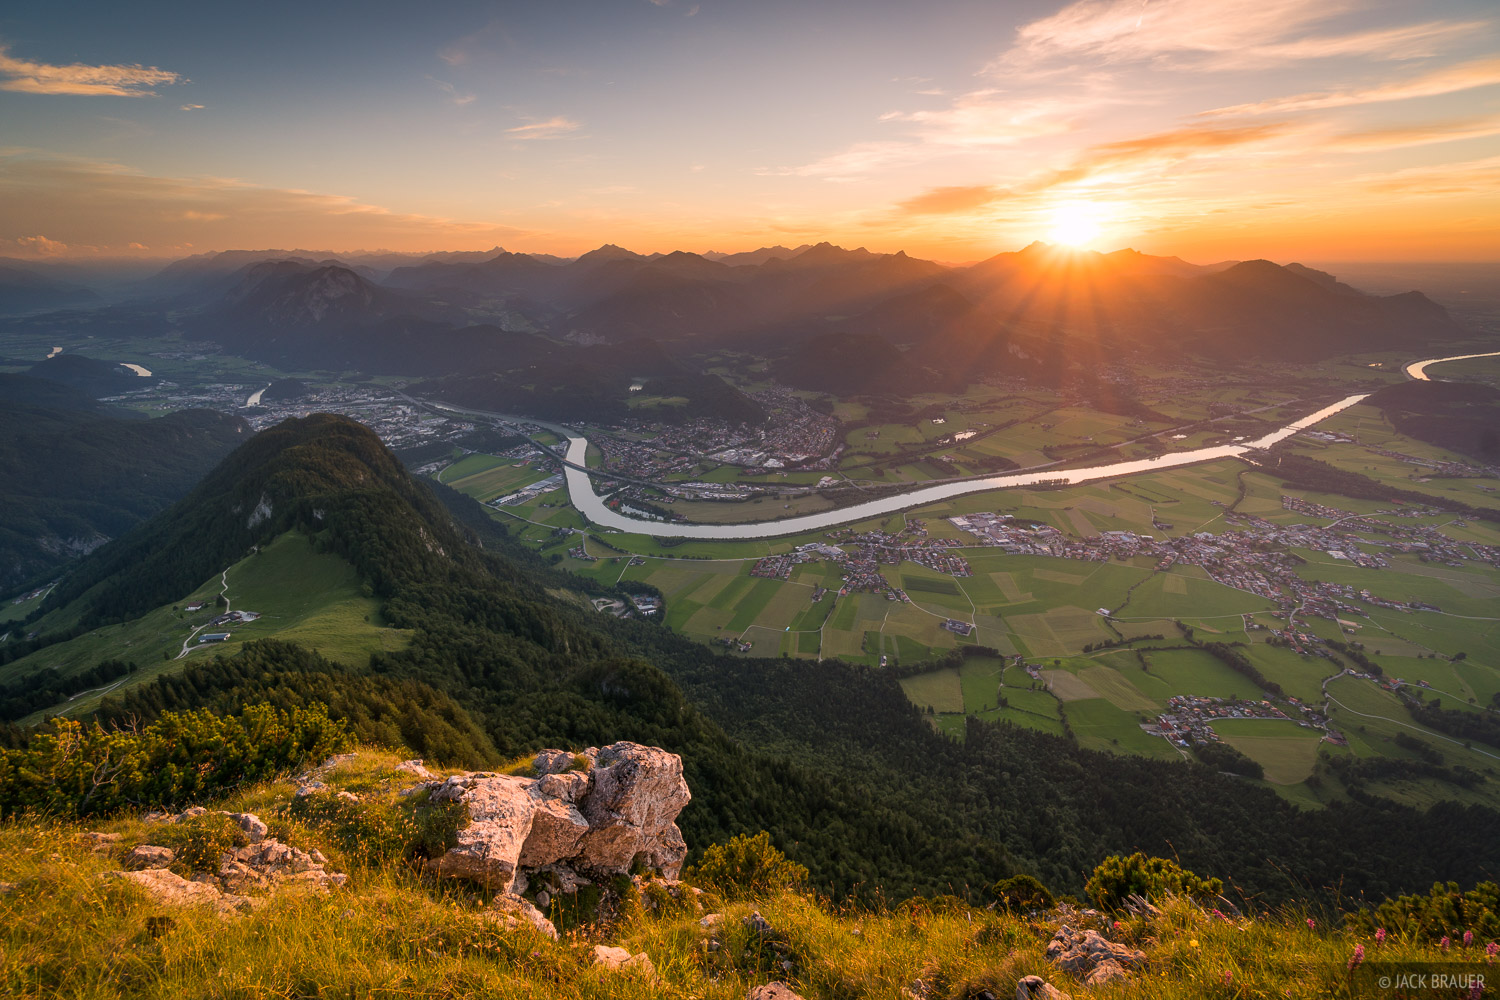 Austria, Kaisergebirge, Naunspitze, sunset, Inn River, Kufstein, Alps, photo